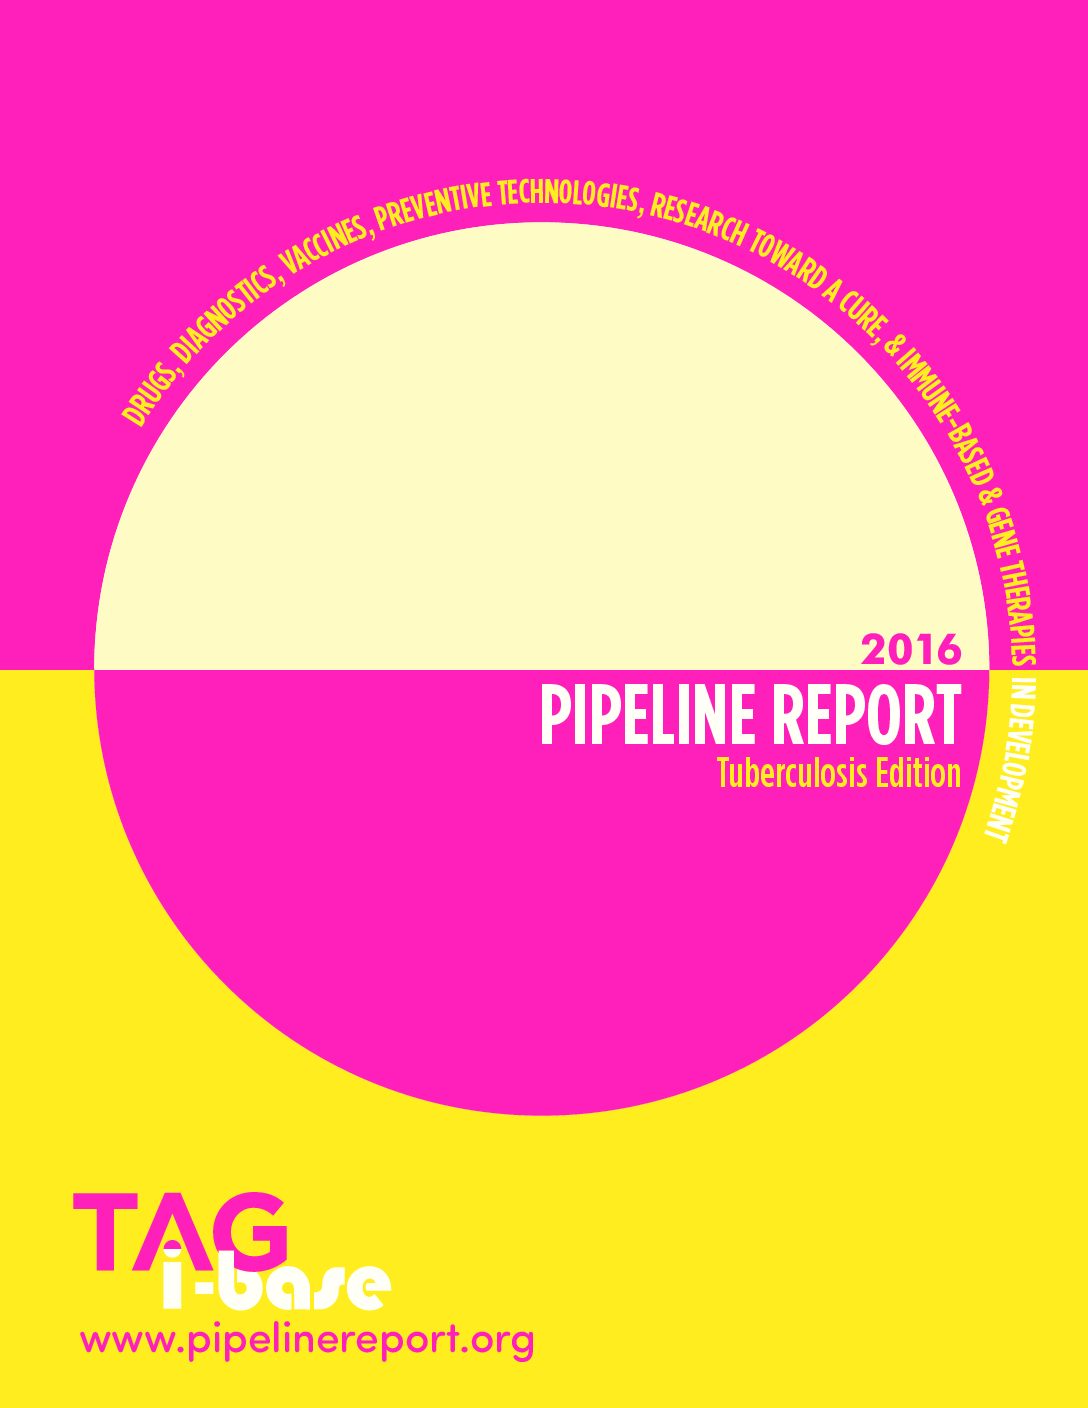 2016 Pipeline Report – TB Edition Only